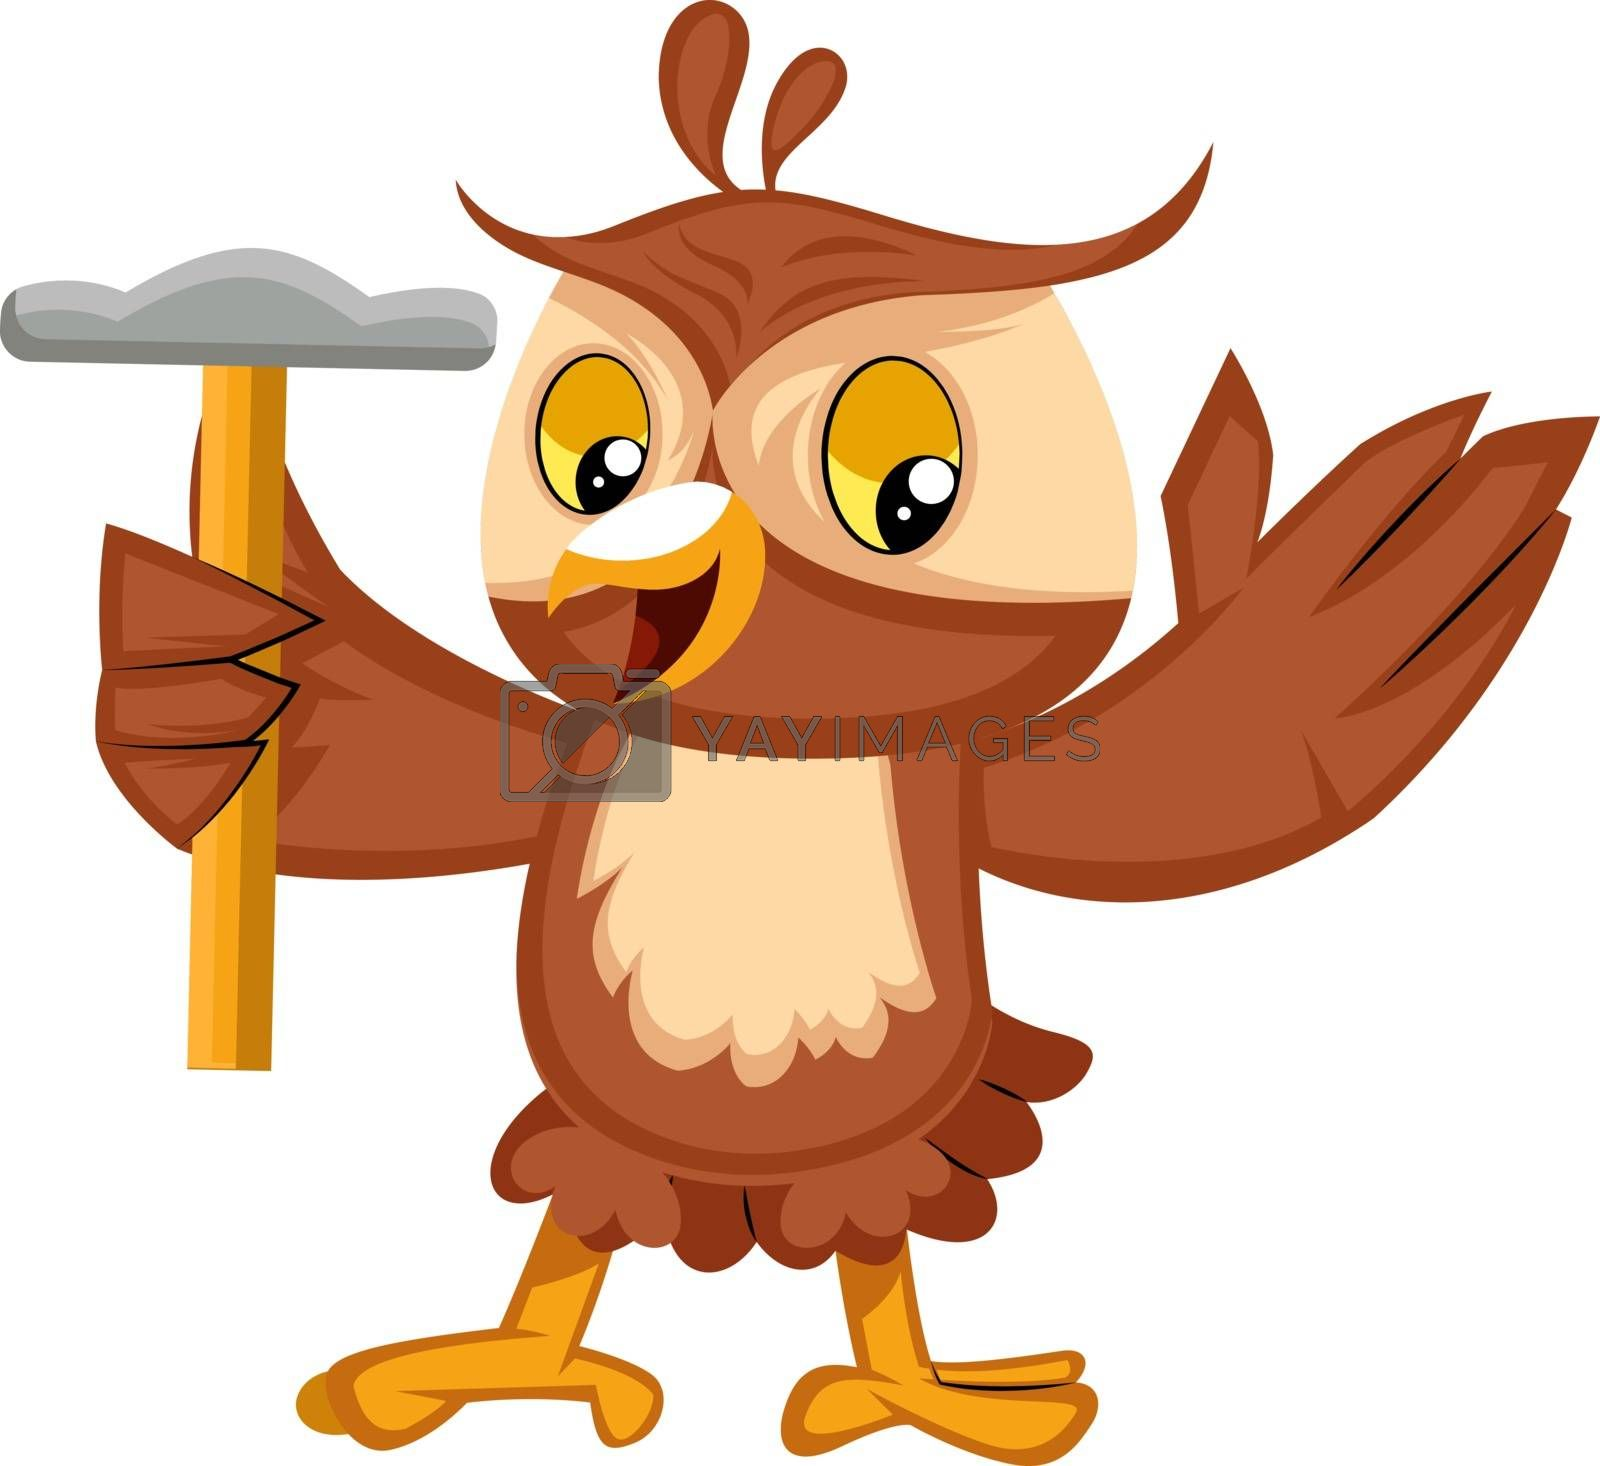 Owl with hammer, illustration, vector on white background.